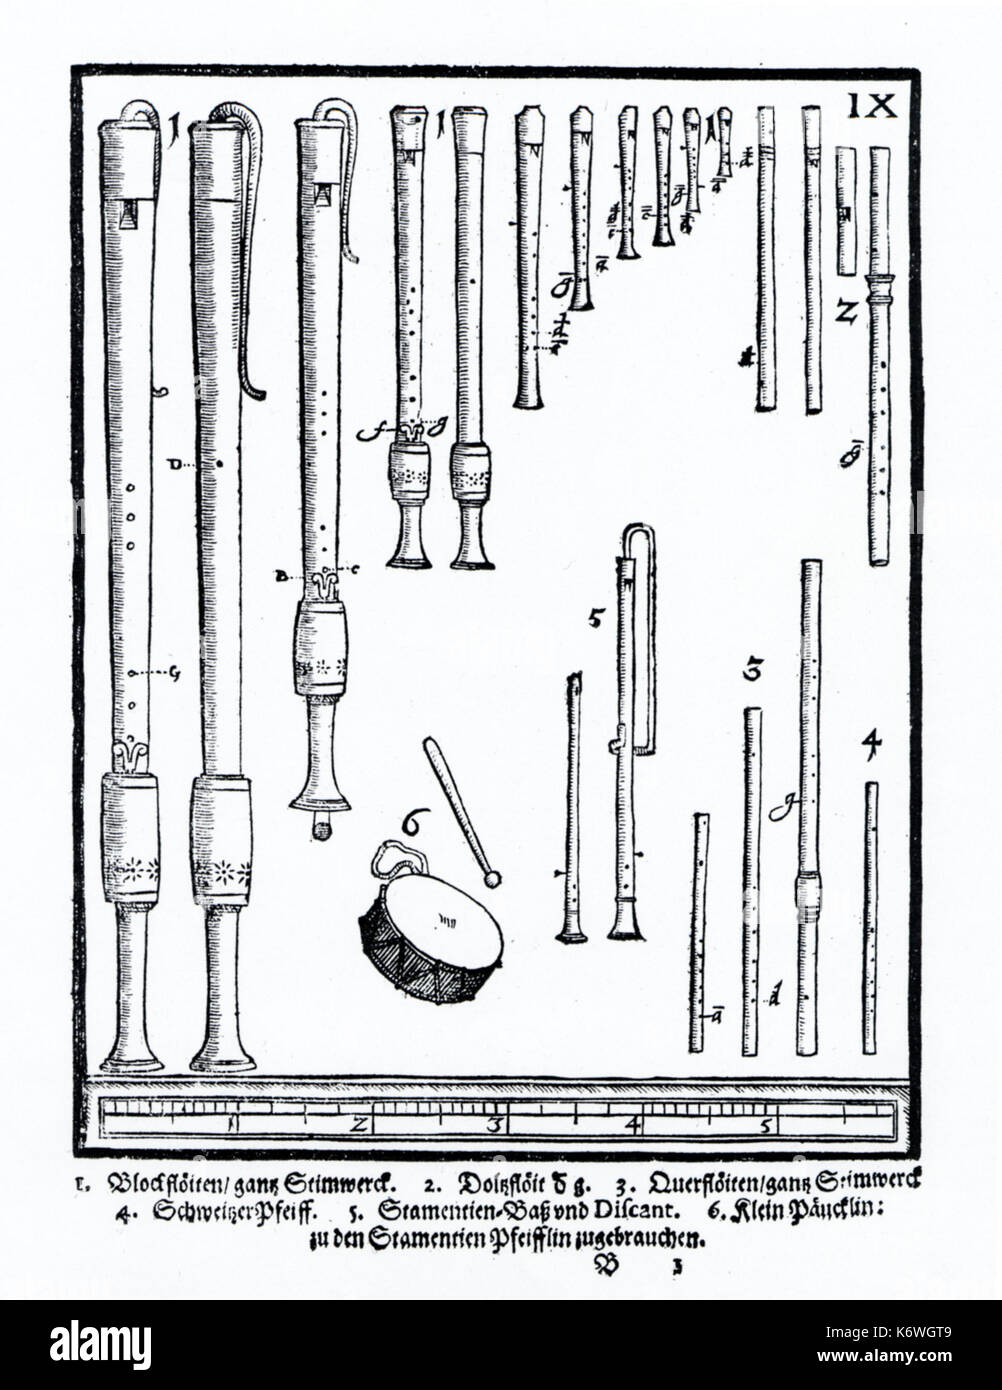 Plate IX from Praetorius's 'Syntagma Musicum' showing: flutes; recorders; 3 hole pipe & tabor; Schweizerpfeiff (military fife).  Dating from 1619.  16th century Renaissance, 17th century early Baroque.  Praetorius: German composer and musicologist of sacred and profance music, 18 February 1571 - 15 February 1621. - Stock Image